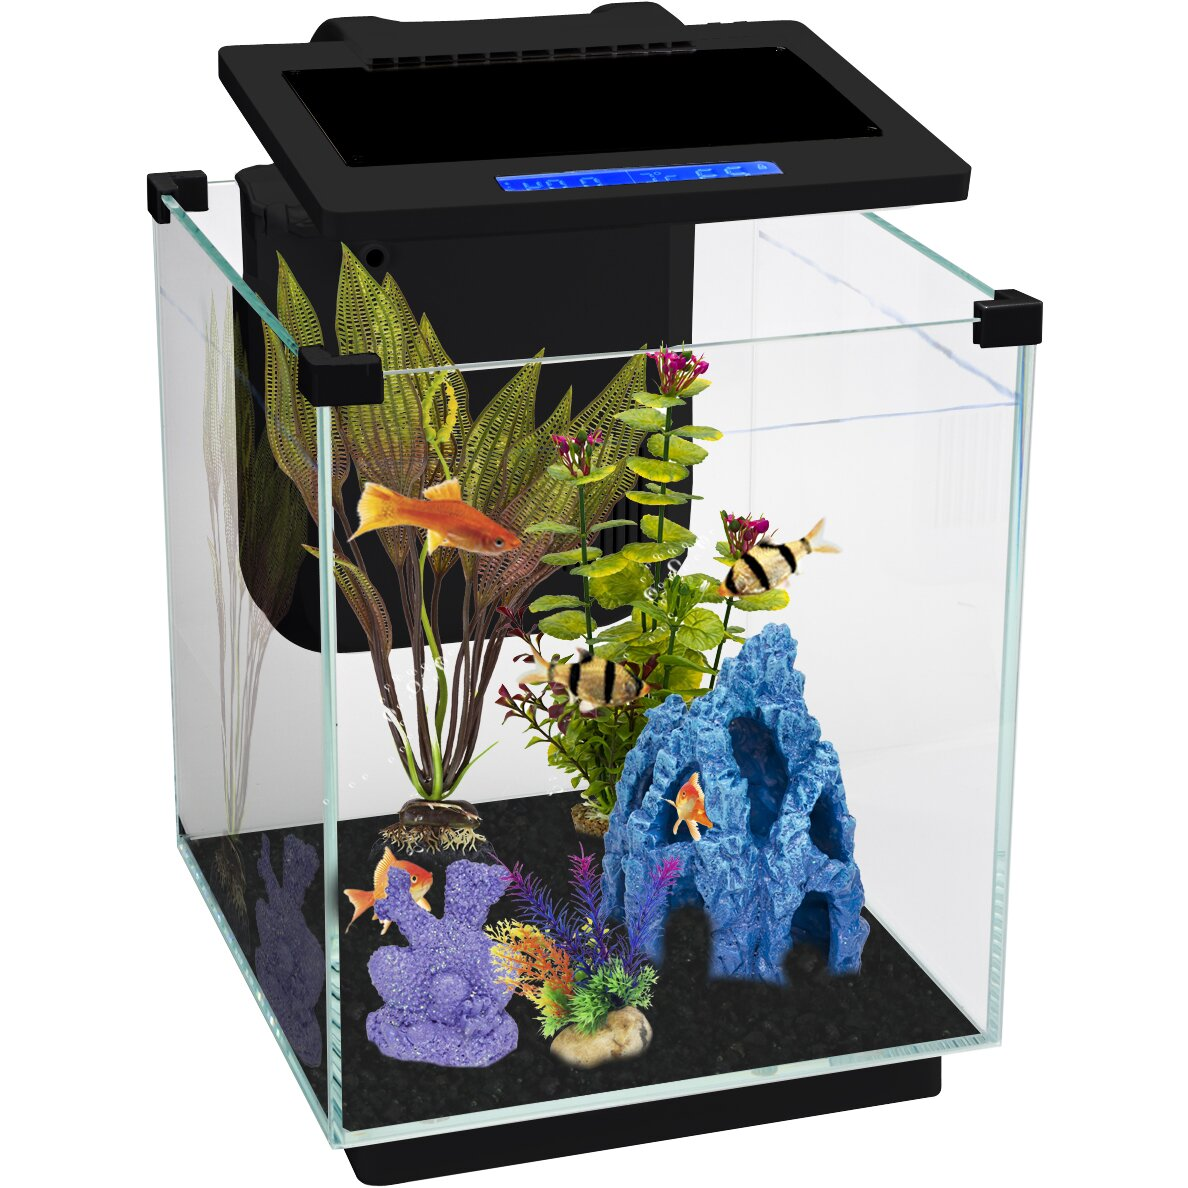 Penn plax simplicity 5 5 gallon desktop aquarium tank for 5 gallon glass fish tank